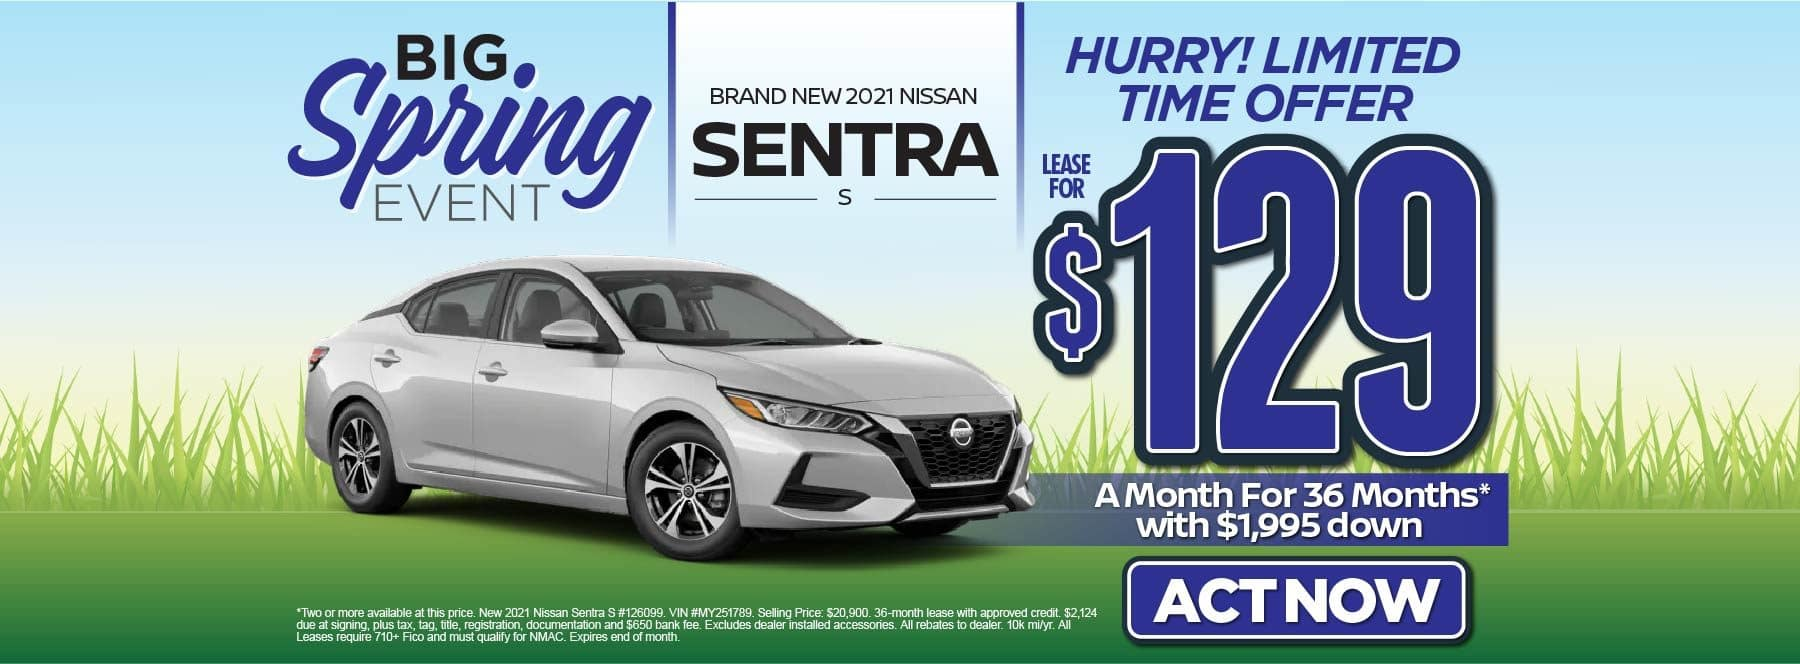 New 2021 Nissan Sentra S – Lease for $129/mo for 36 months with $1,995 Down* Act now.